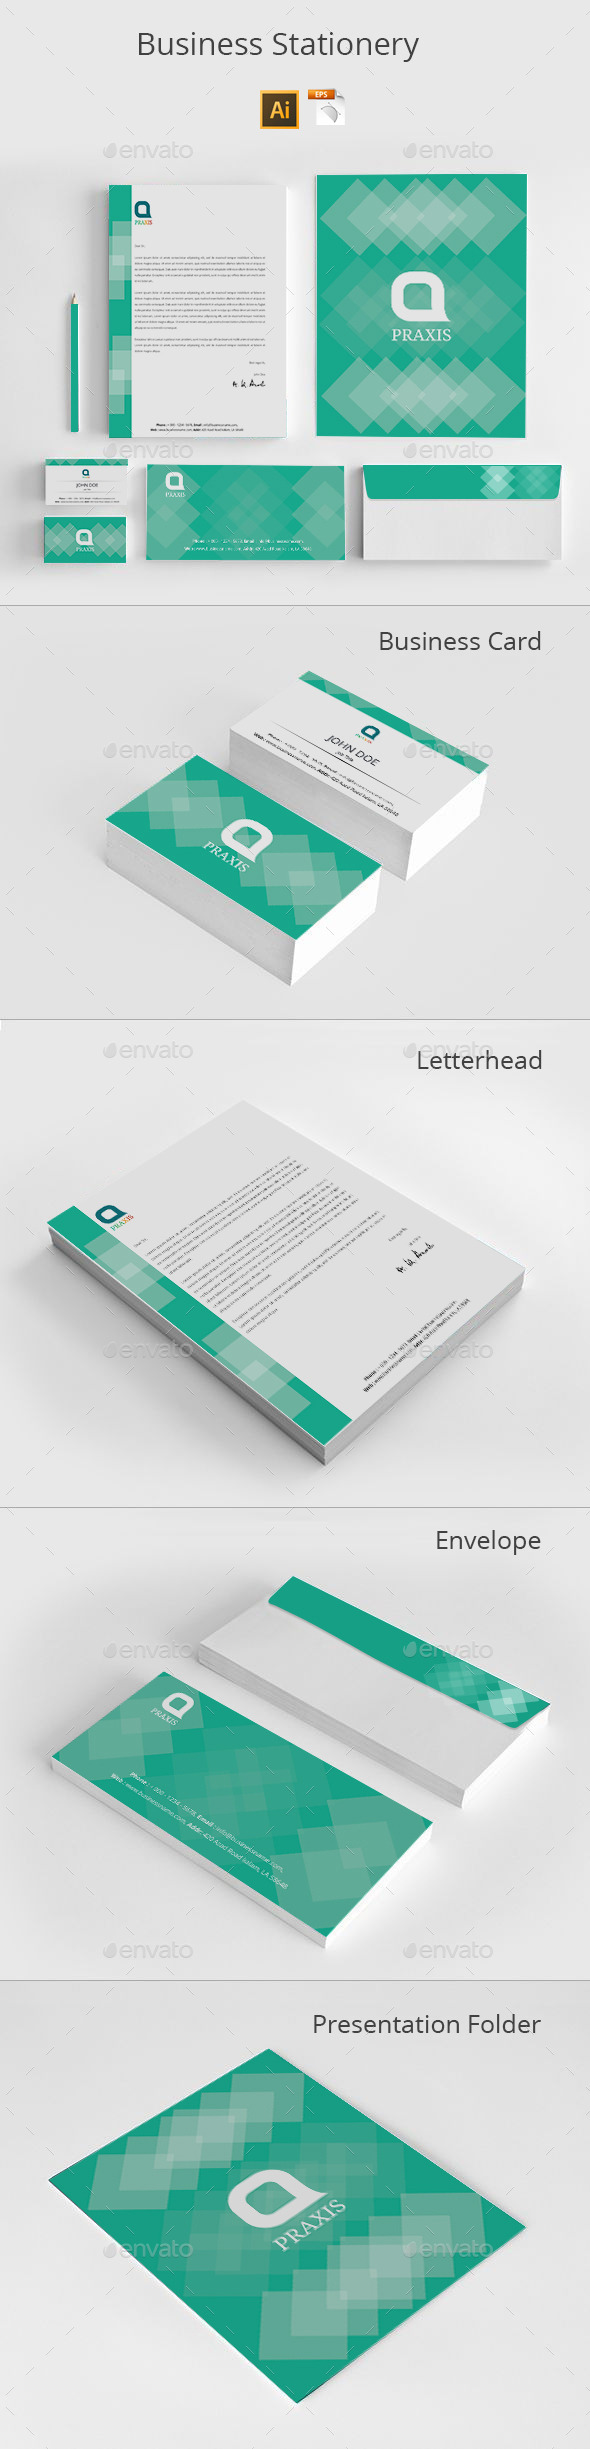 GraphicRiver Business Stationery 8818583